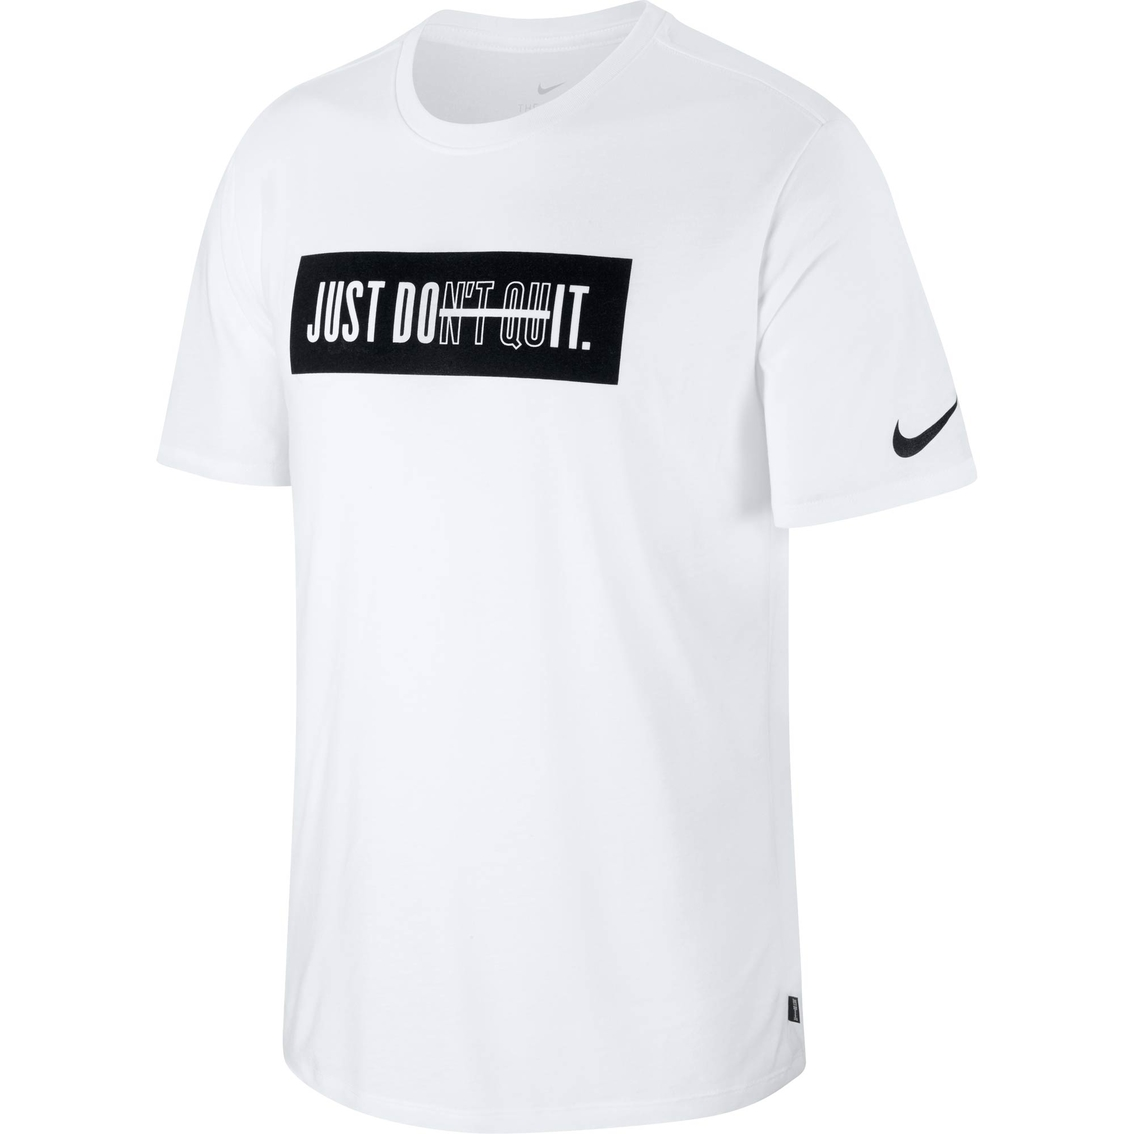 Nike Dry Don't Quit Db Tee | Shirts | Clothing | Shop The